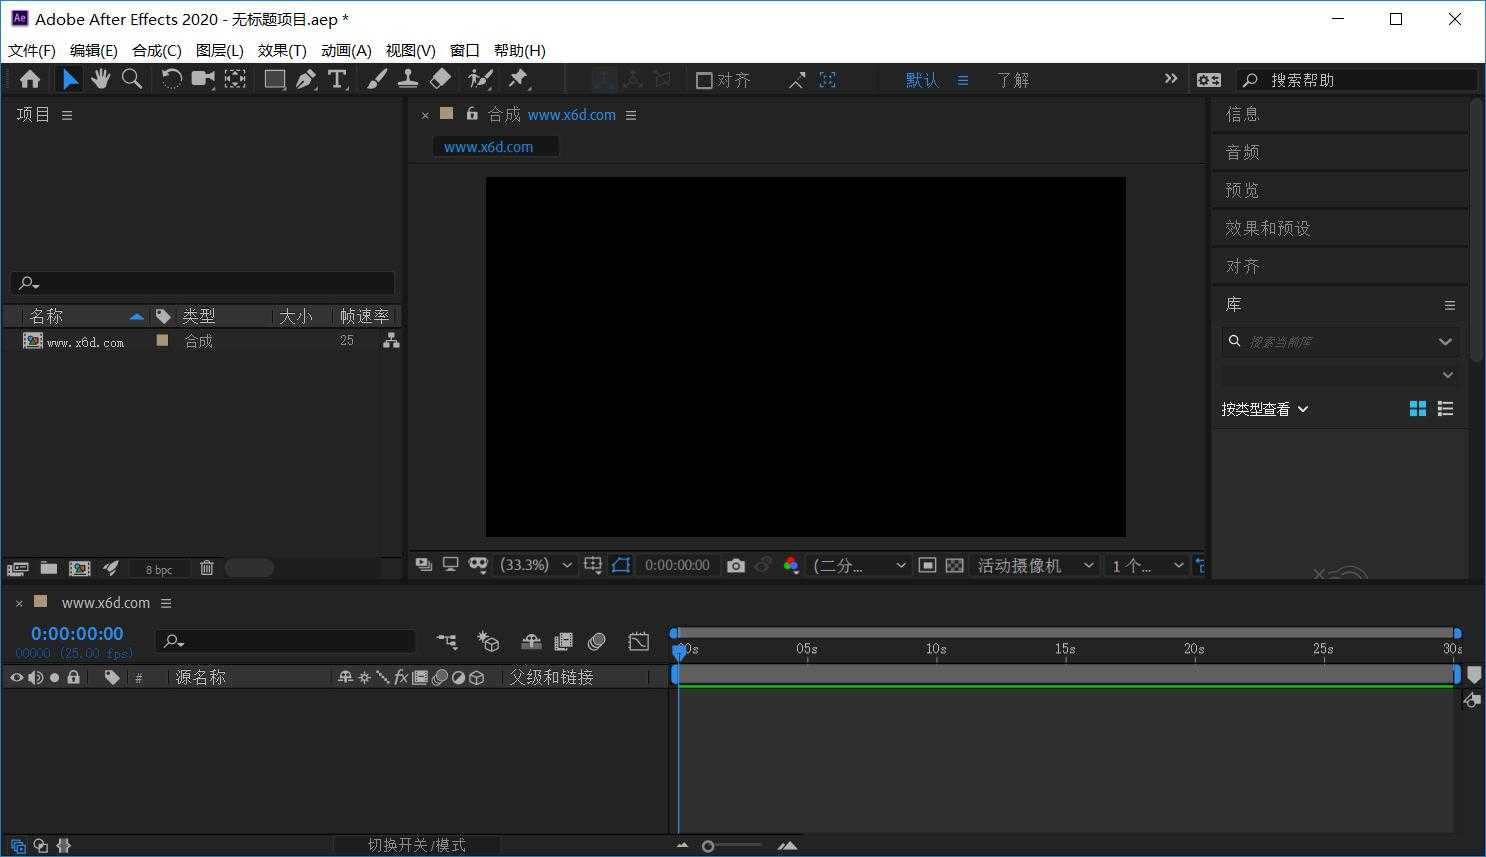 After Effects 2020 绿化版-52资源网